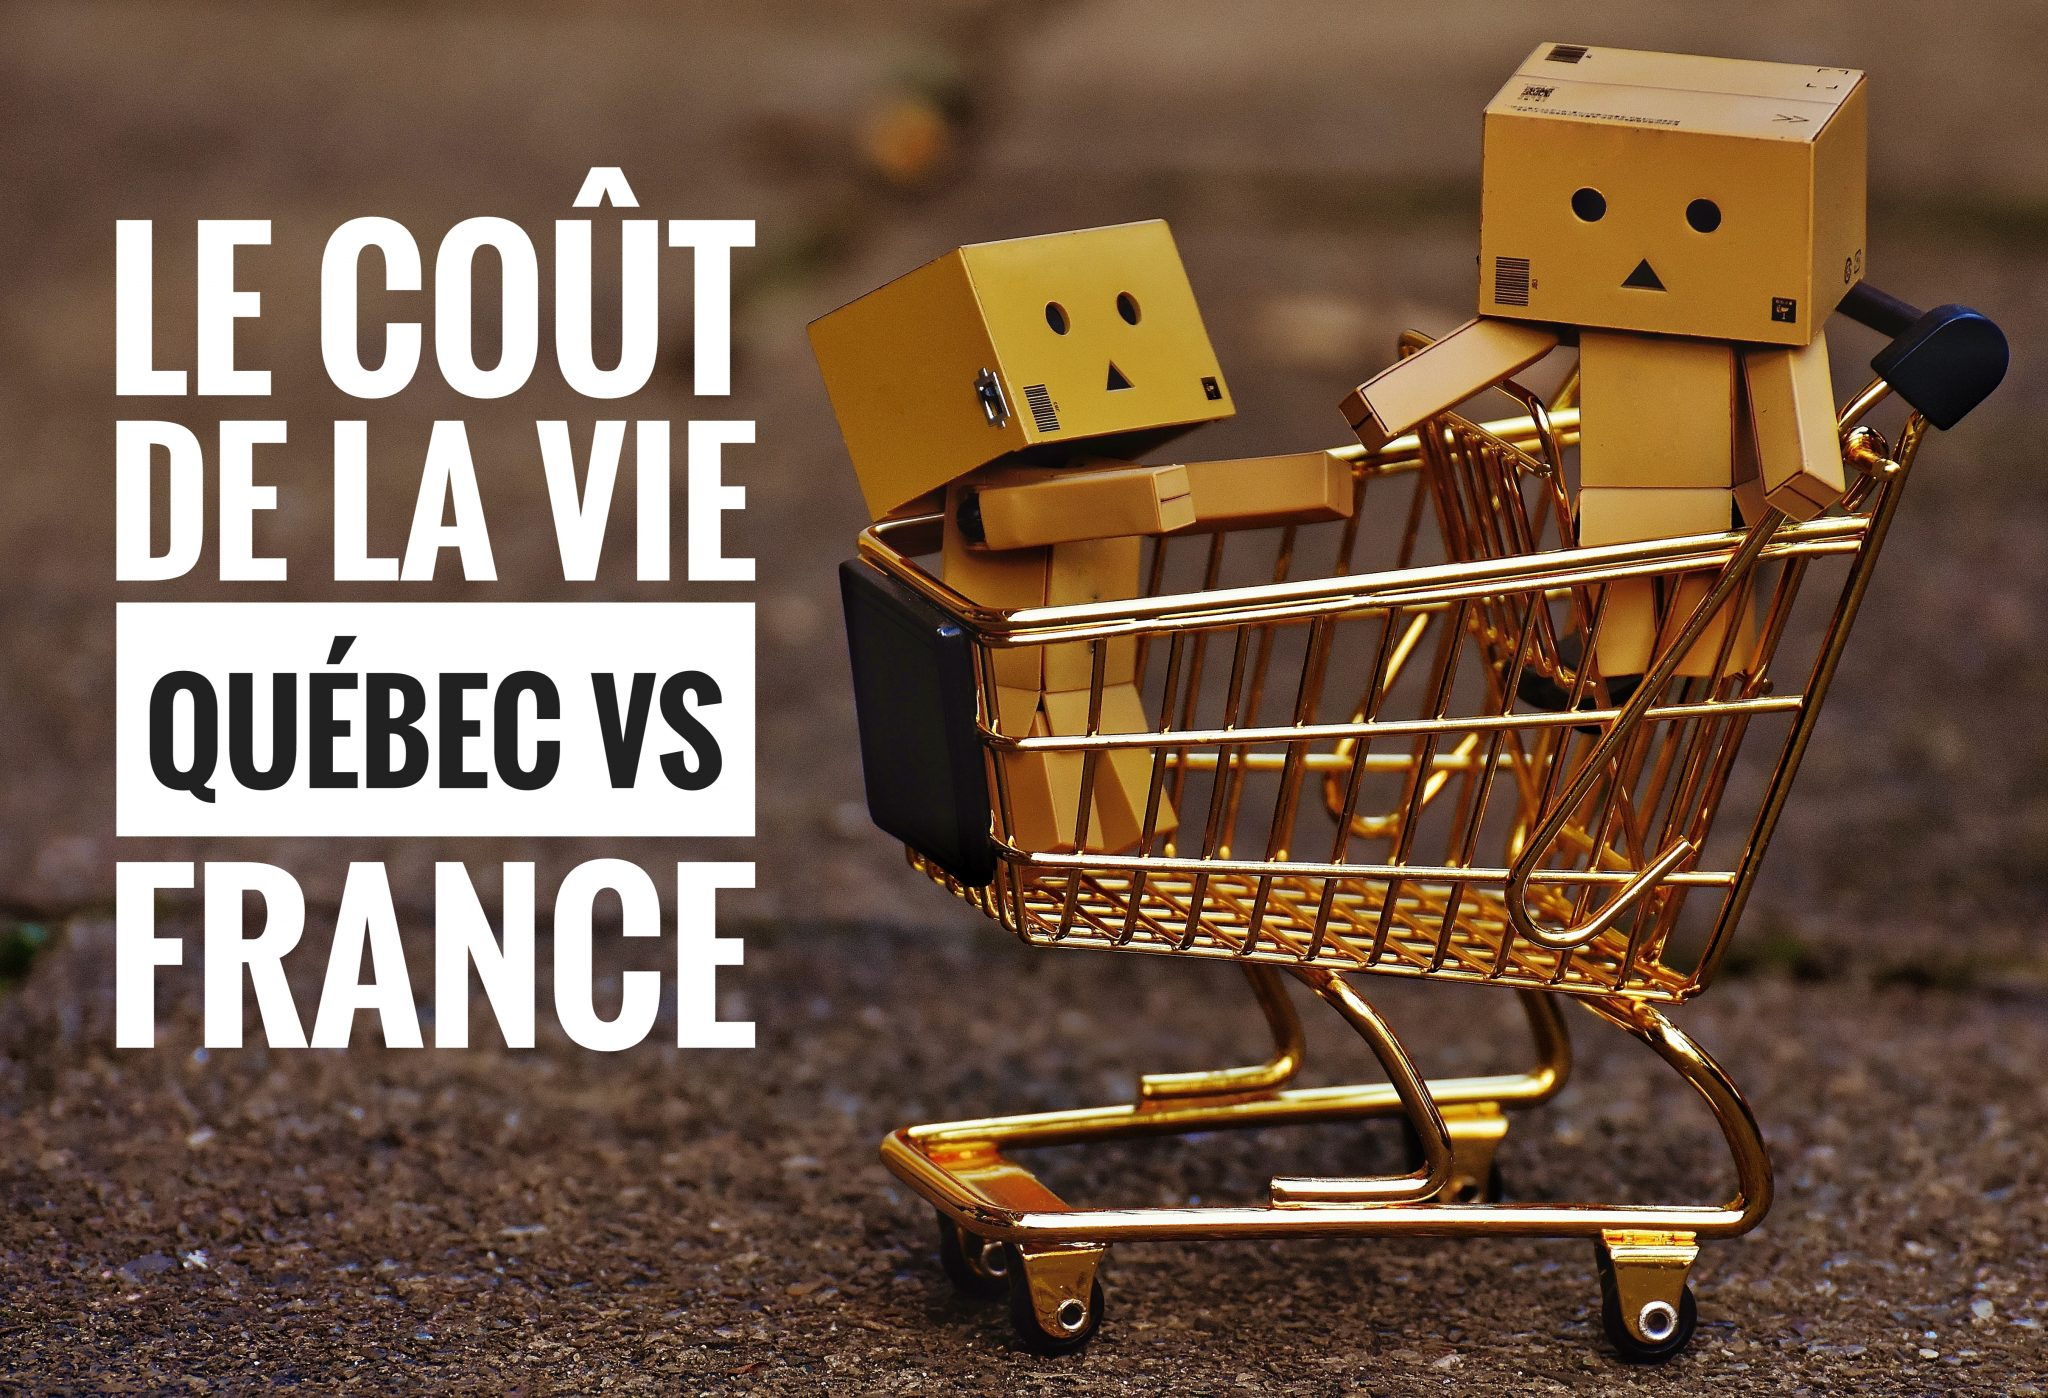 le co u00fbt de la vie   qu u00e9bec vs france